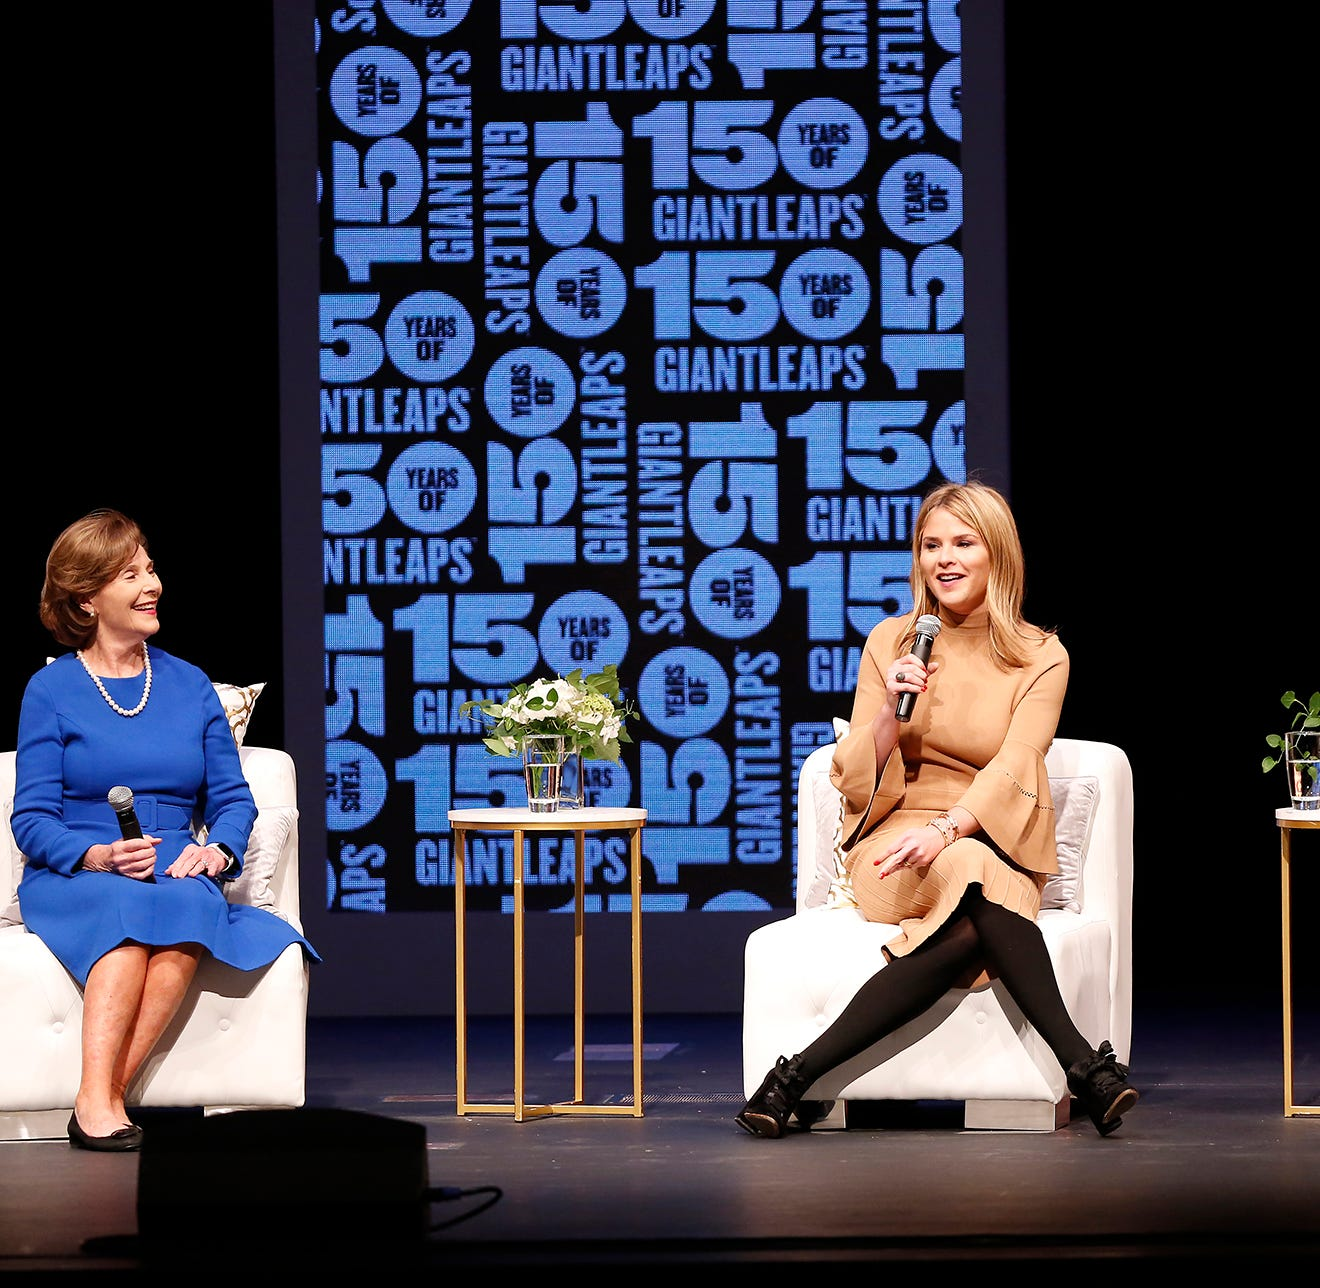 Former First Lady Laura W. Bush, from left, and daughters Jenna Bush Hager and Barbara Pierce Bush tell stories from the White House as they present Women in the White House & Beyond Thursday, October 18, 2018, in Elliott Hall of Music on the campus of Purdue University. The event was part of the Sears lecture series.